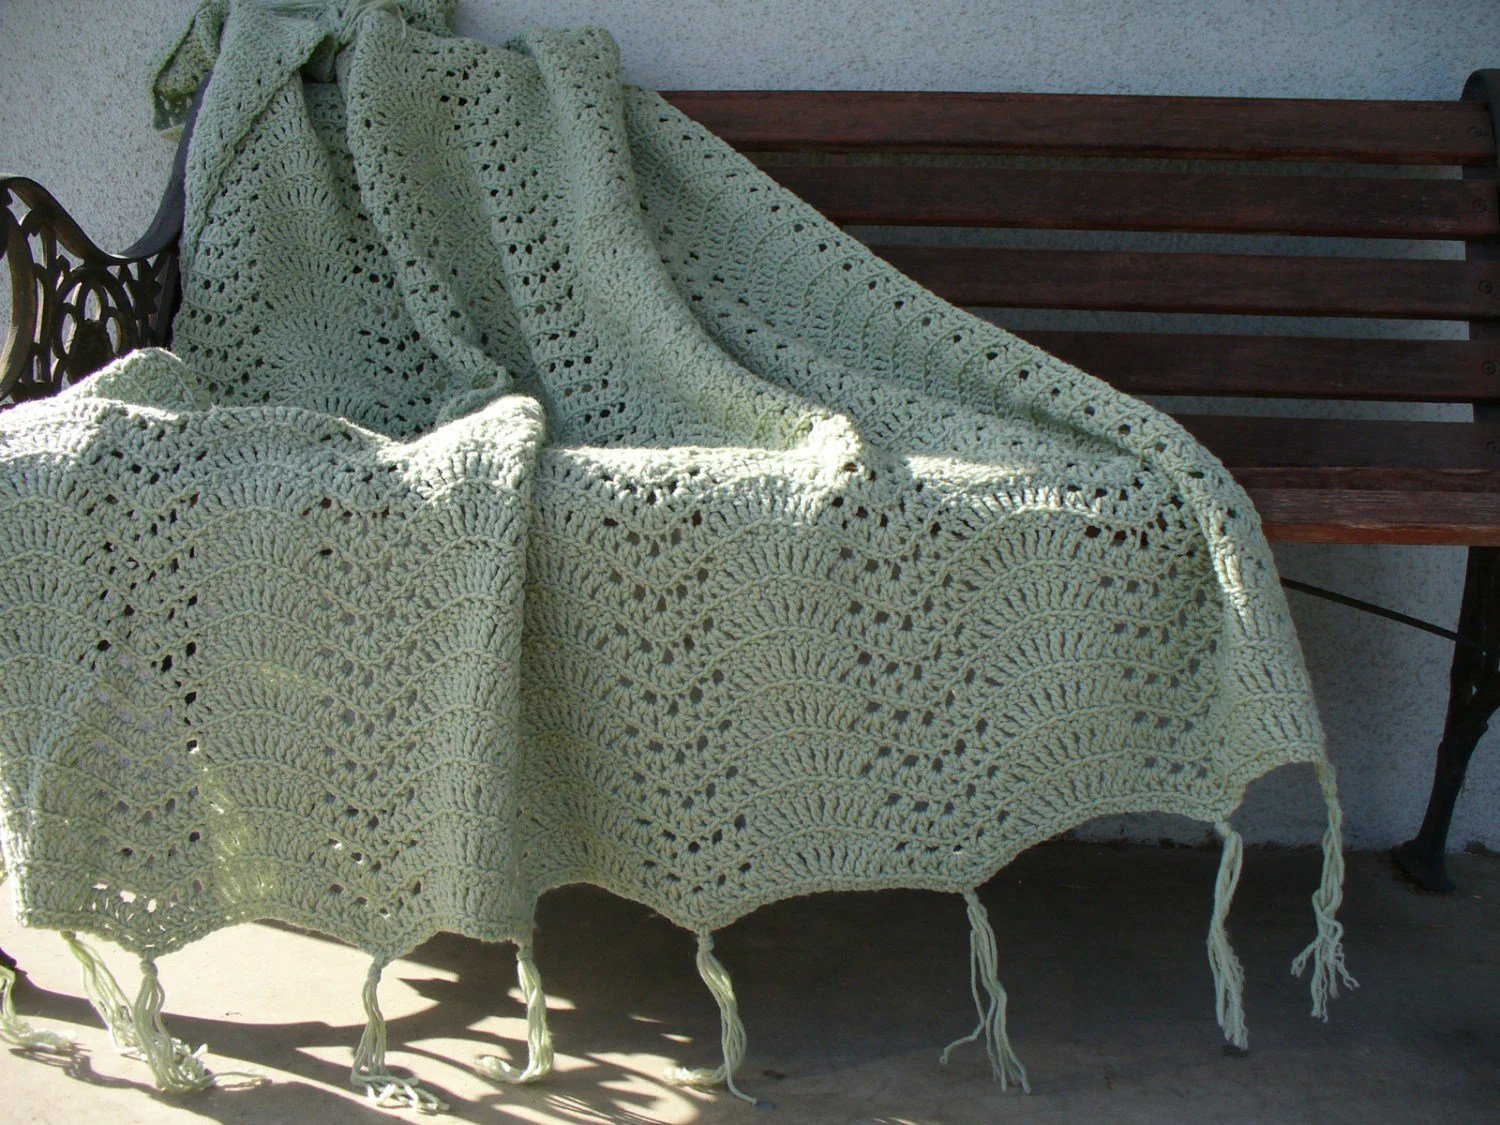 daybed sofa cover slipcovers for sofas with attached pillows crochet sage green afghan country home throw blanket